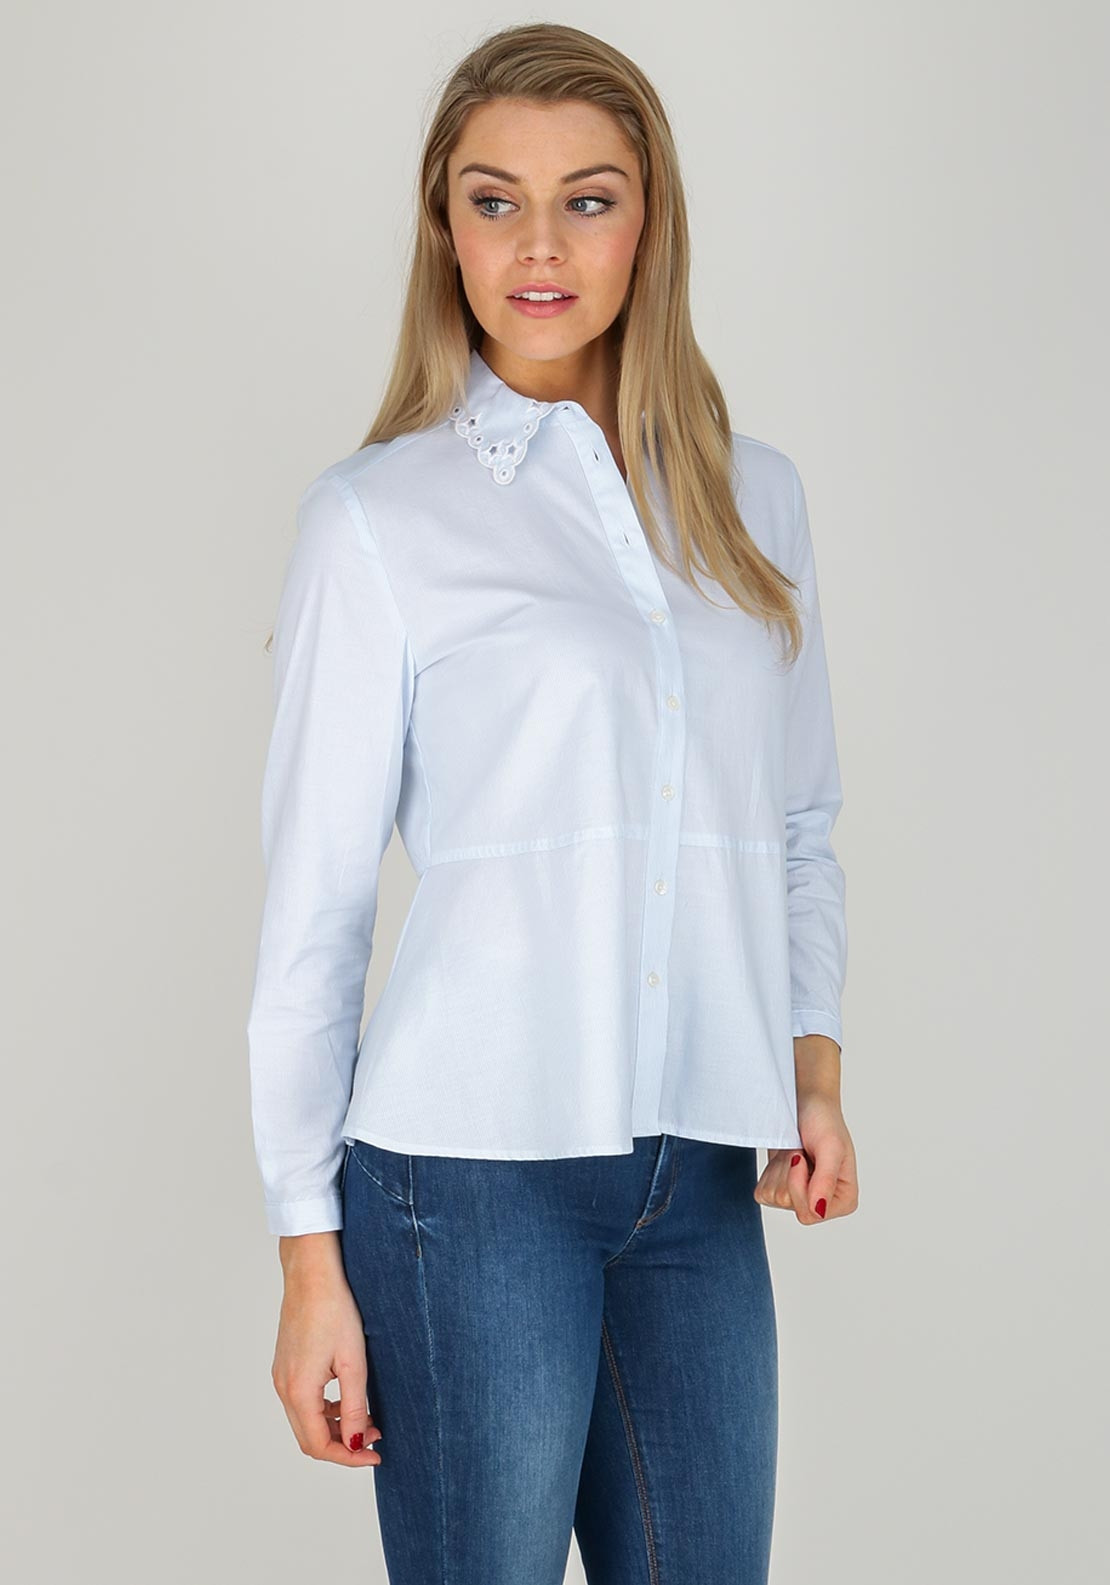 95f9b448 Tommy Hilfiger Womens Haven Flared Shirt, Blue | McElhinneys